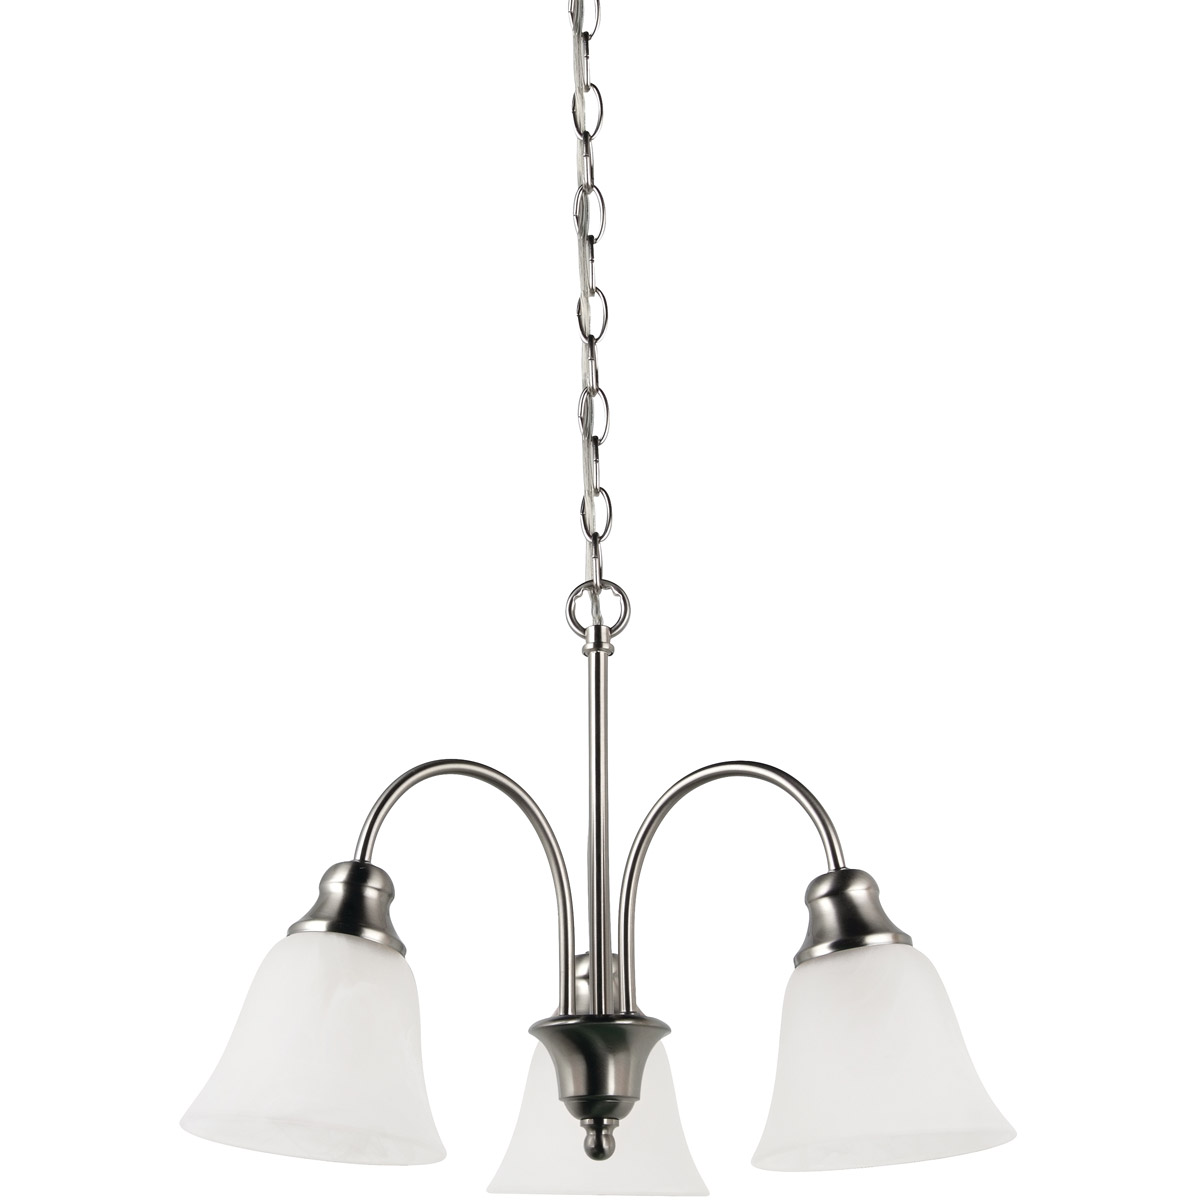 Sea Gull Lighting Windgate 3 Light Chandelier in Brushed Nickel 35949-962 photo